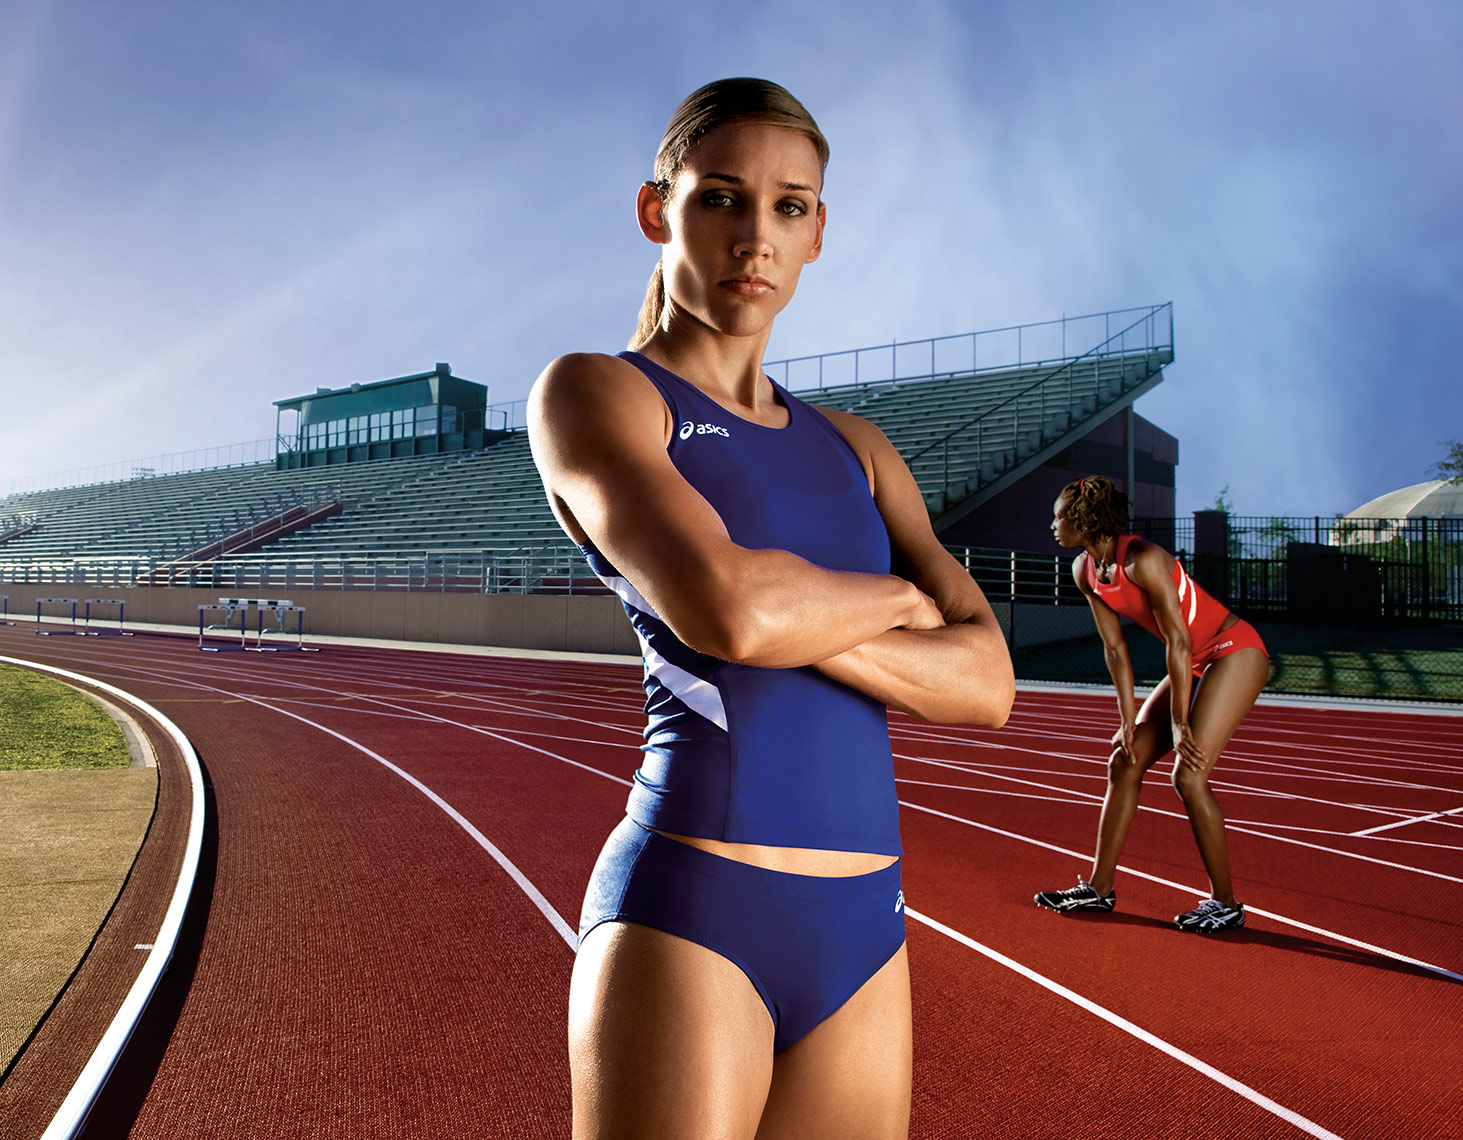 LOLO-JONES-ON-THE-TRACK